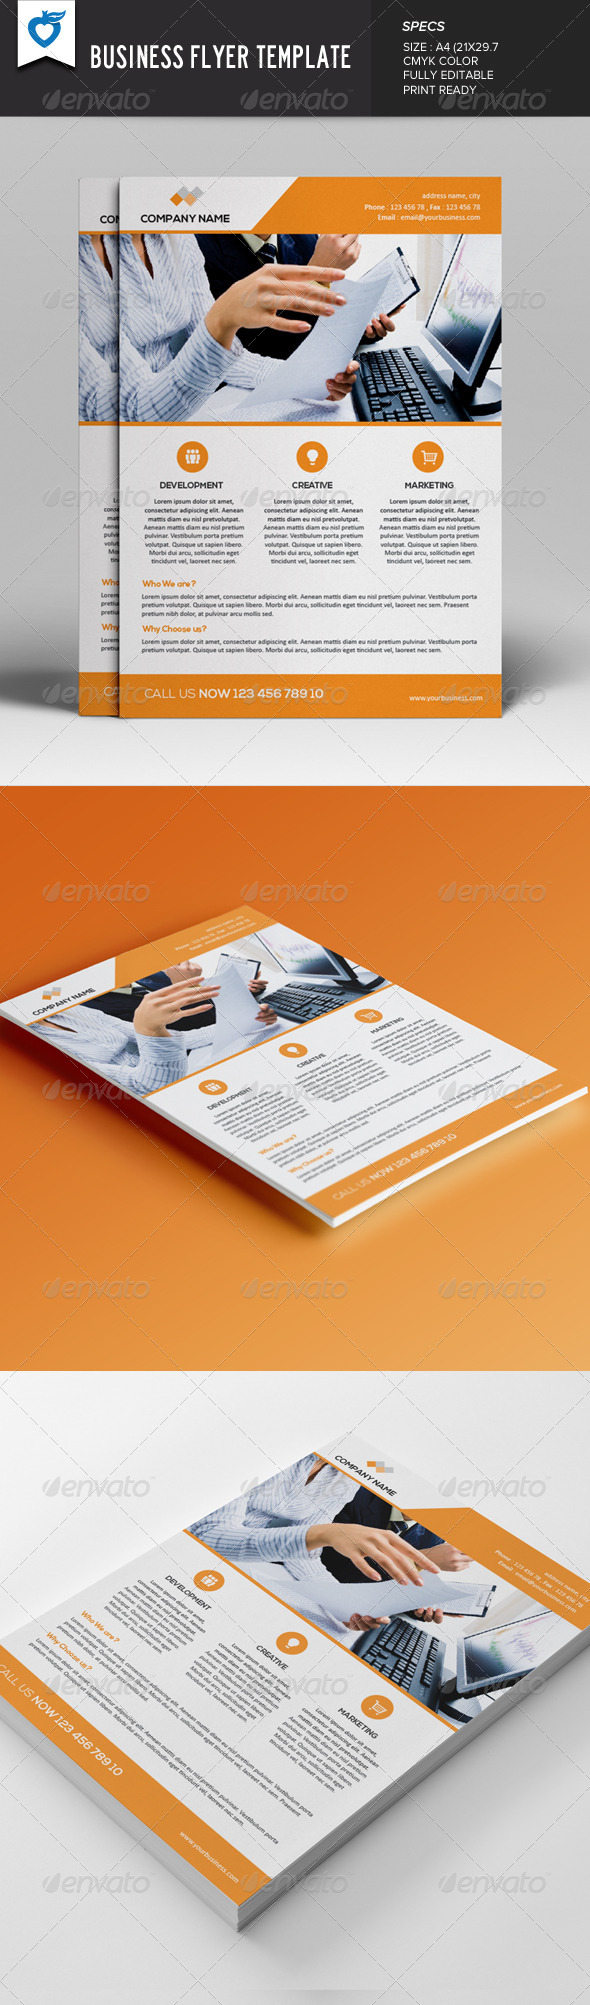 GraphicRiver Business Flyer Template v2 7716893